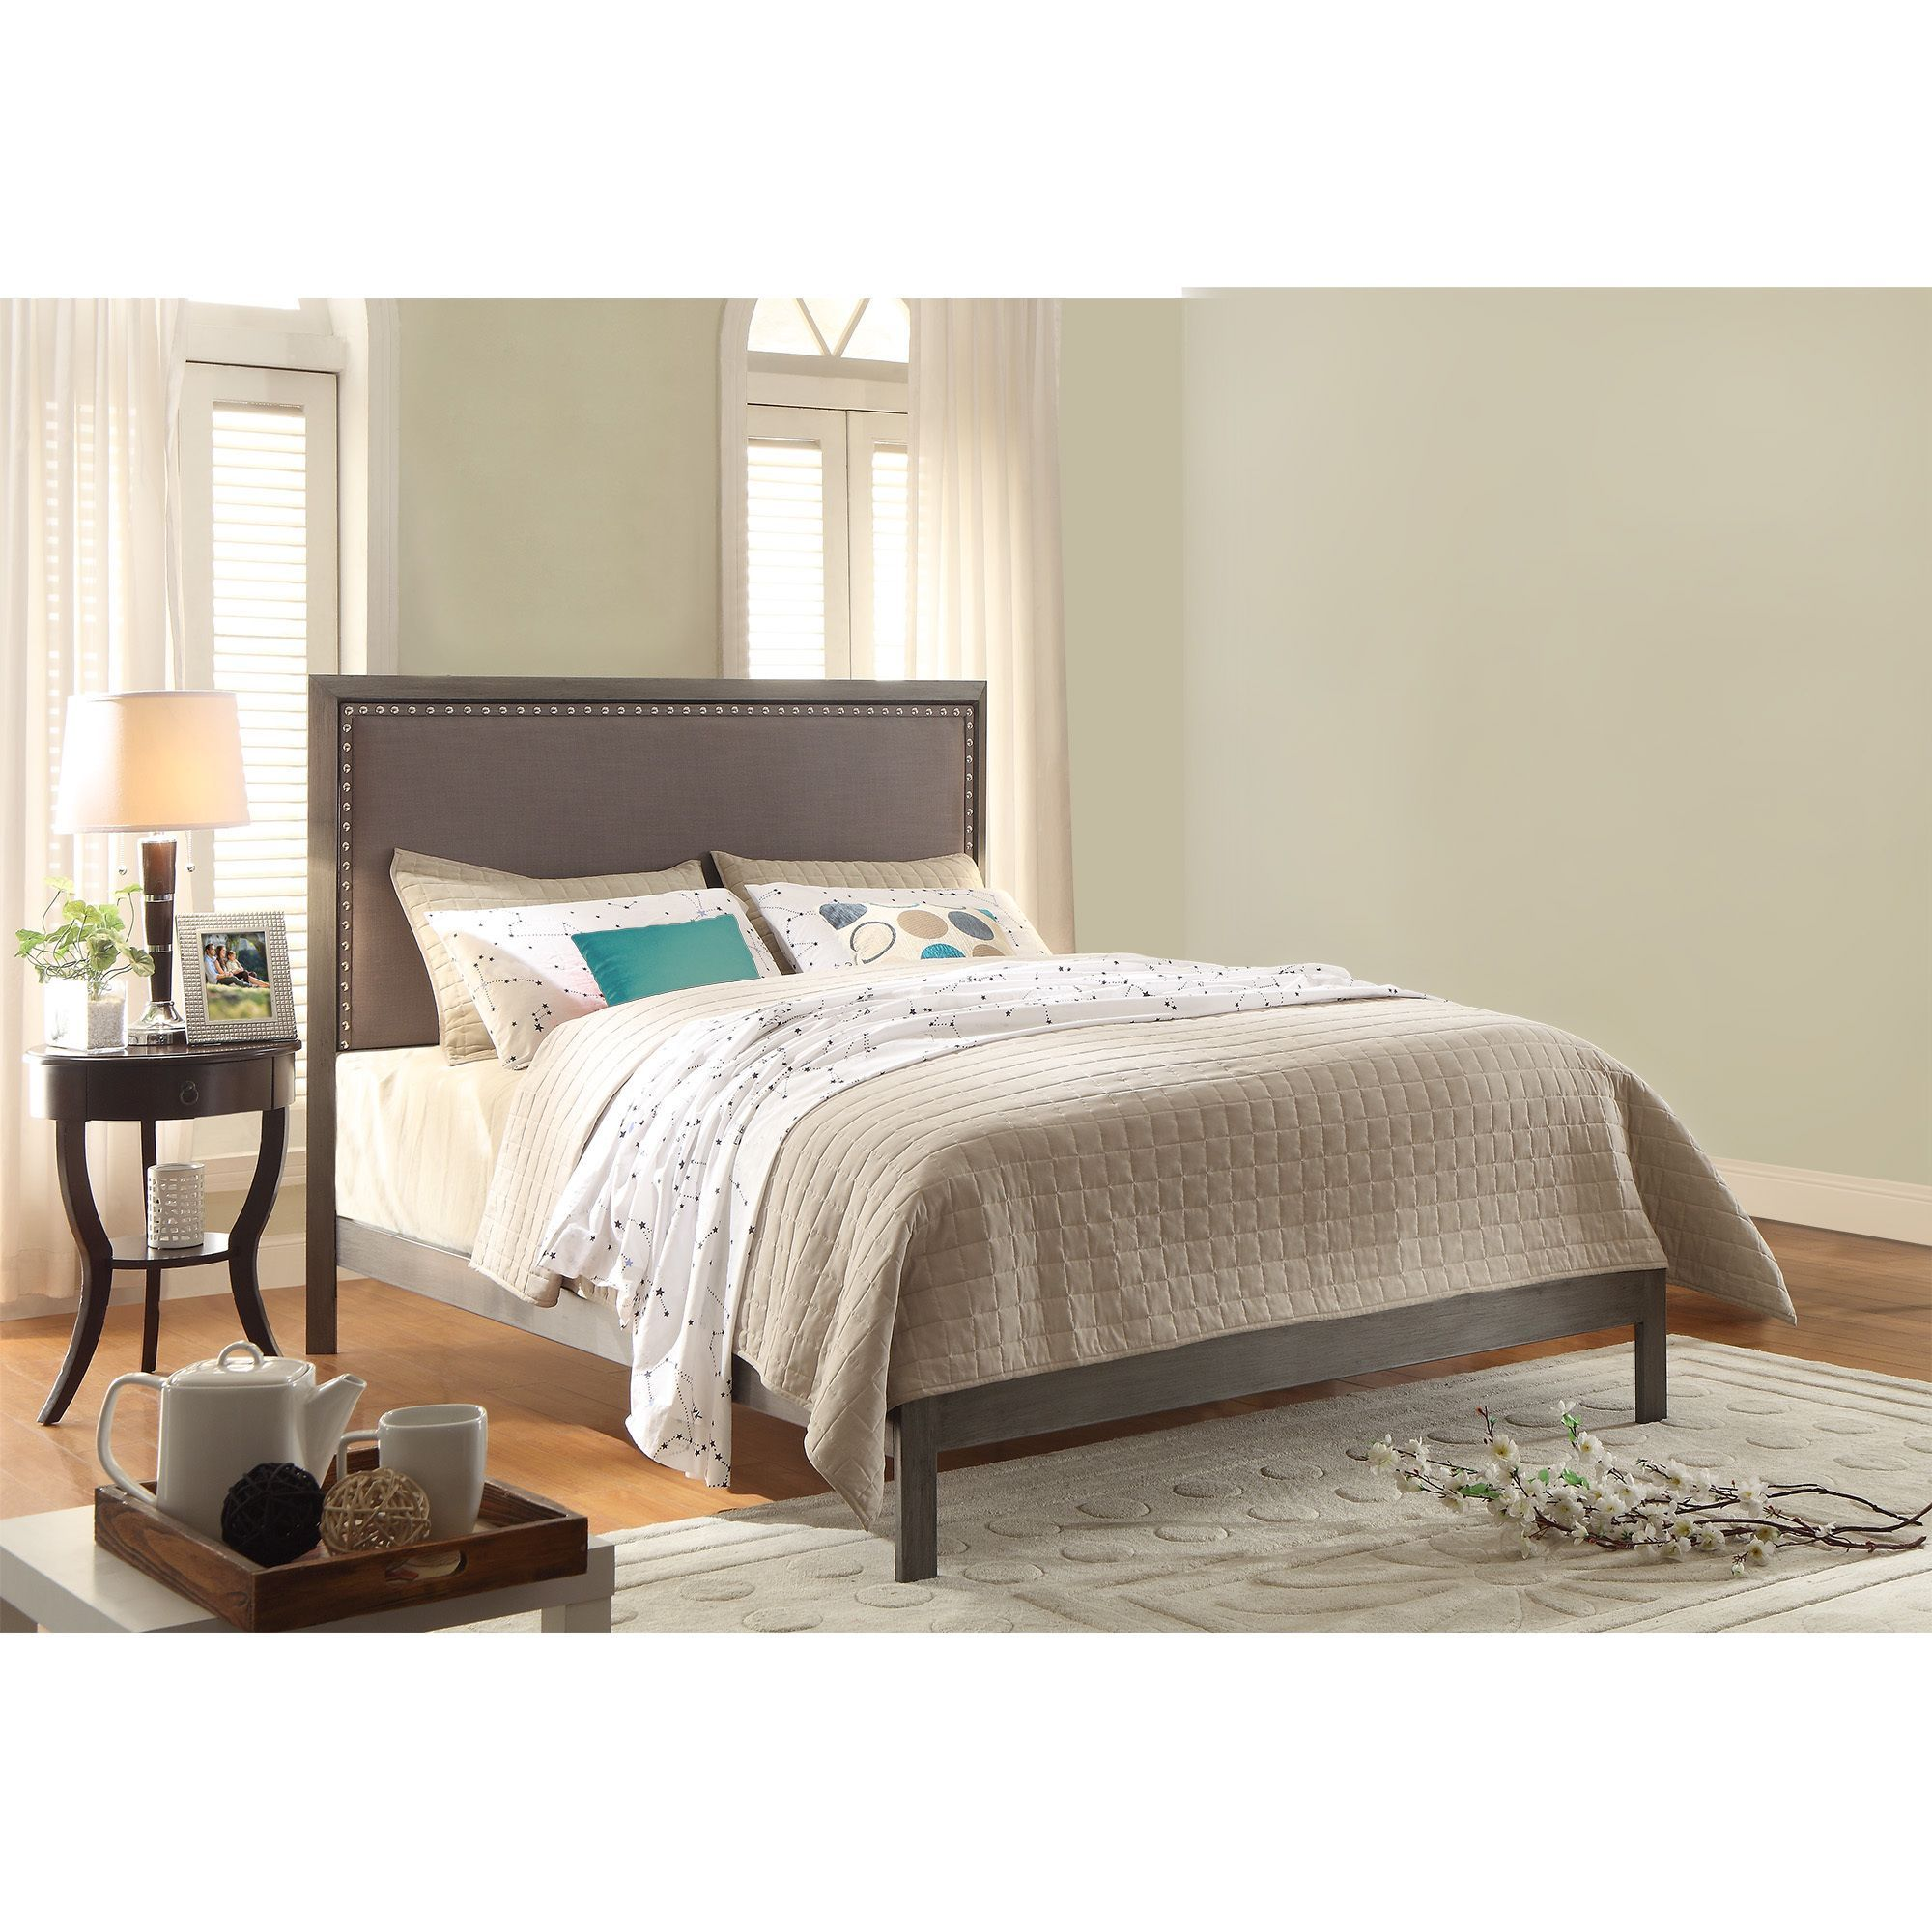 Normandy Platform Bed with Metal Frame and Steel Gray Upholstered ...